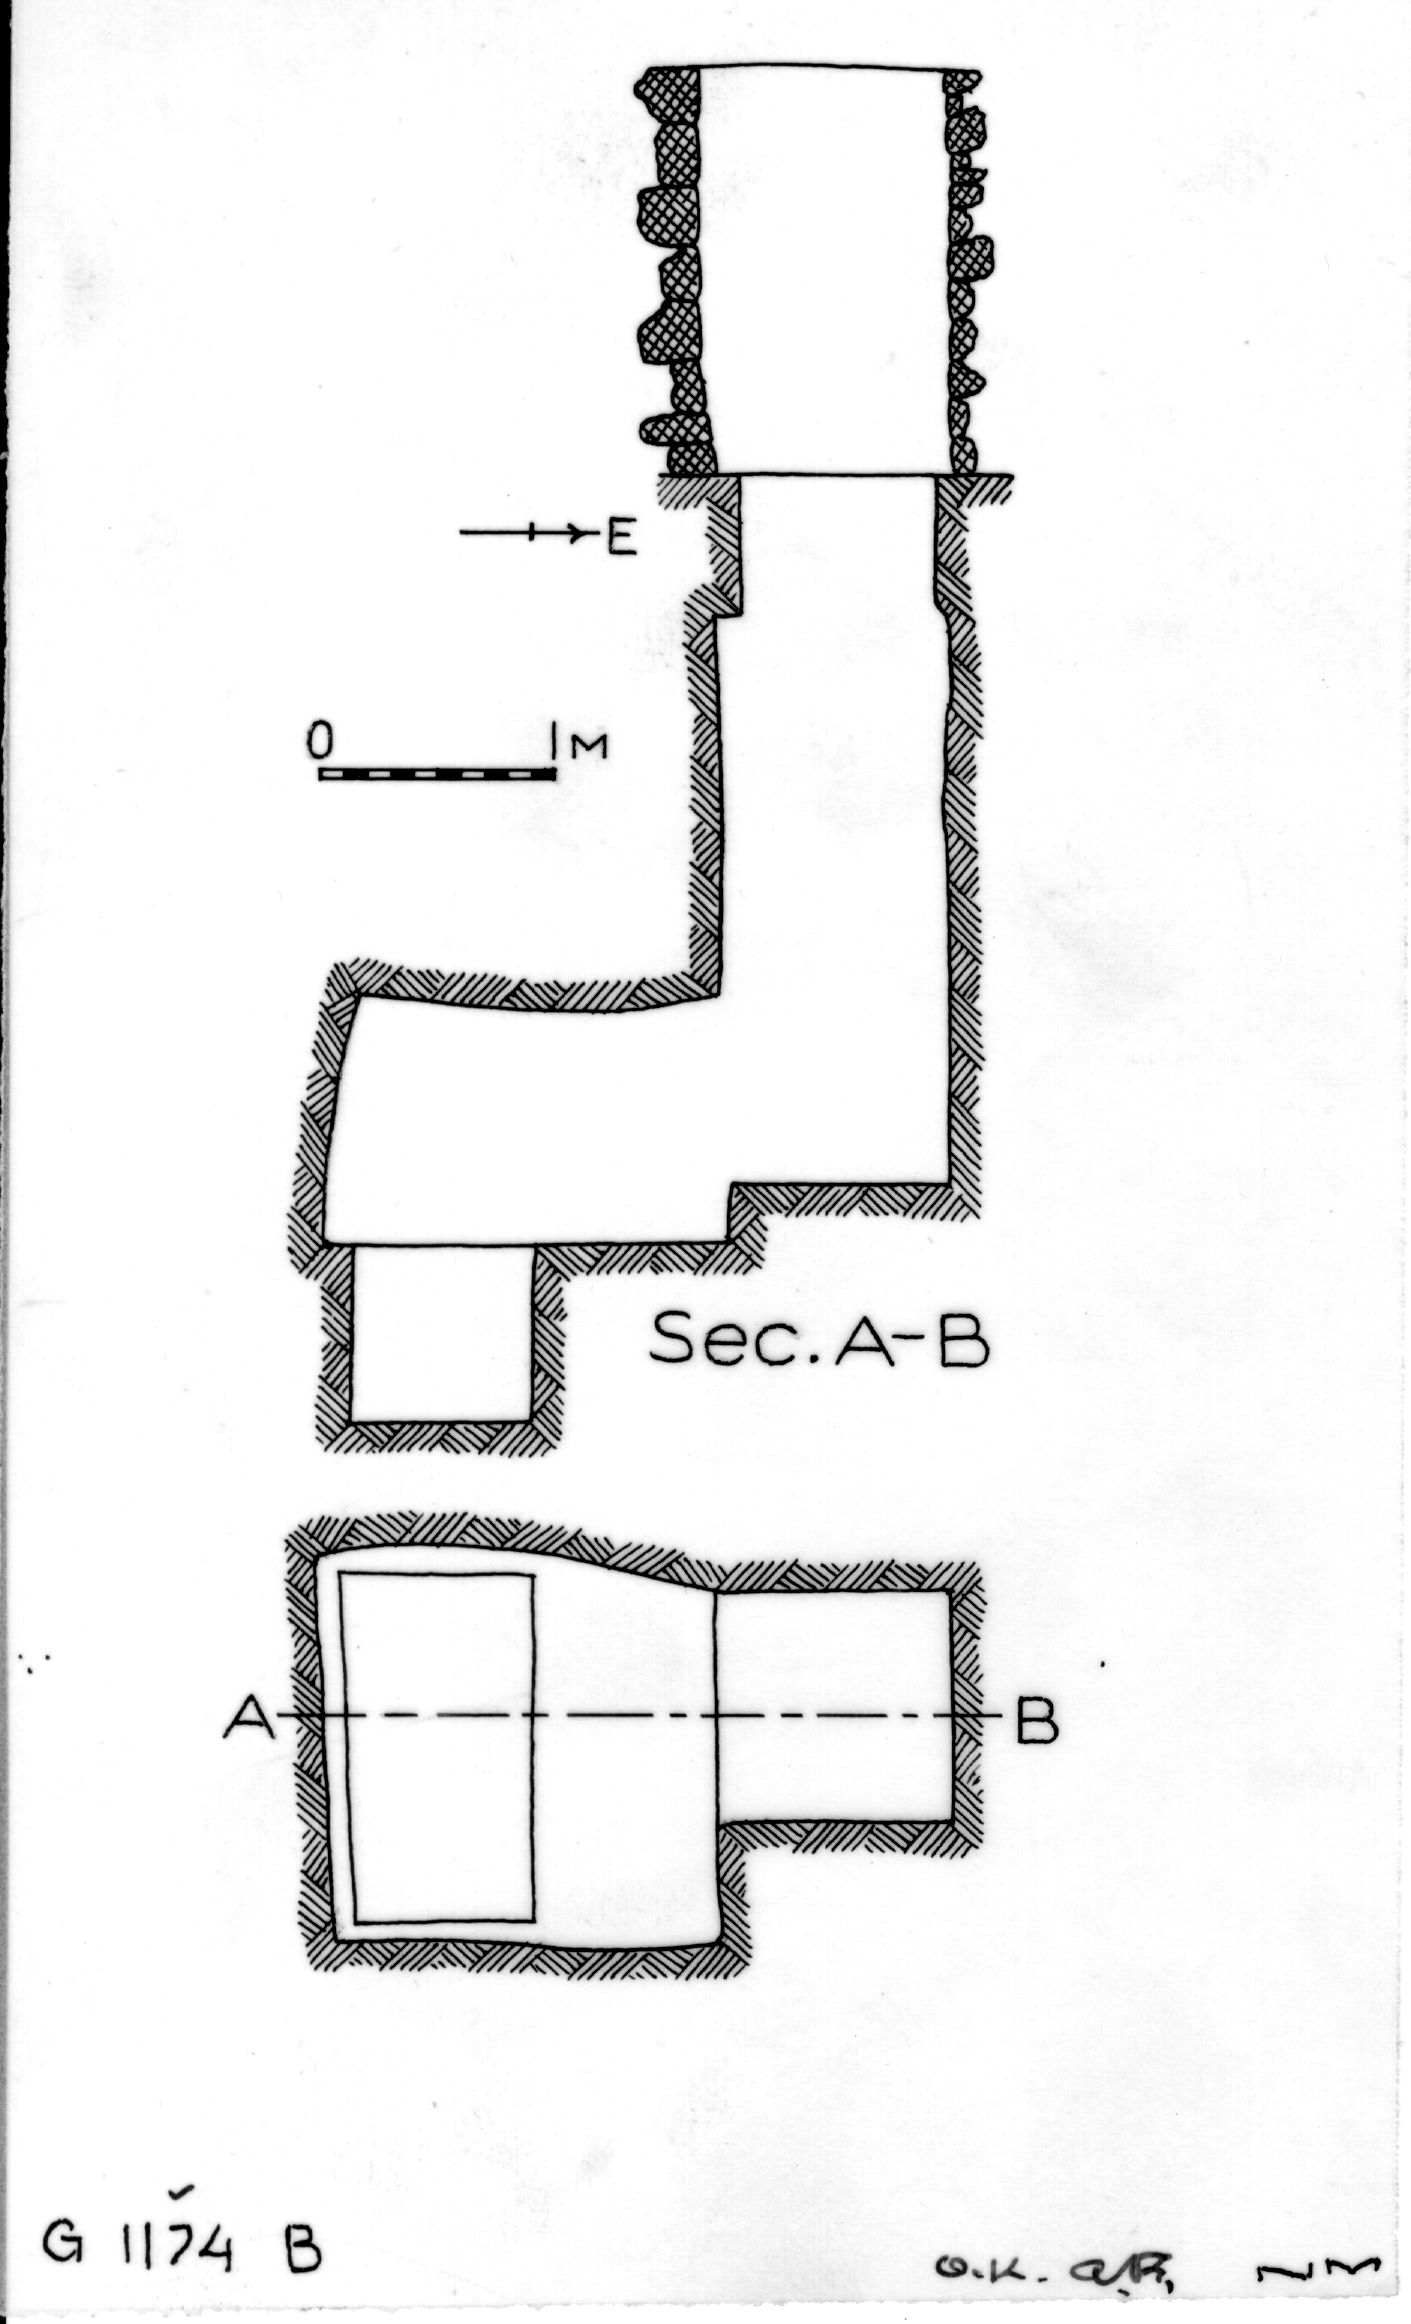 Maps and plans: G 1174, Shaft B